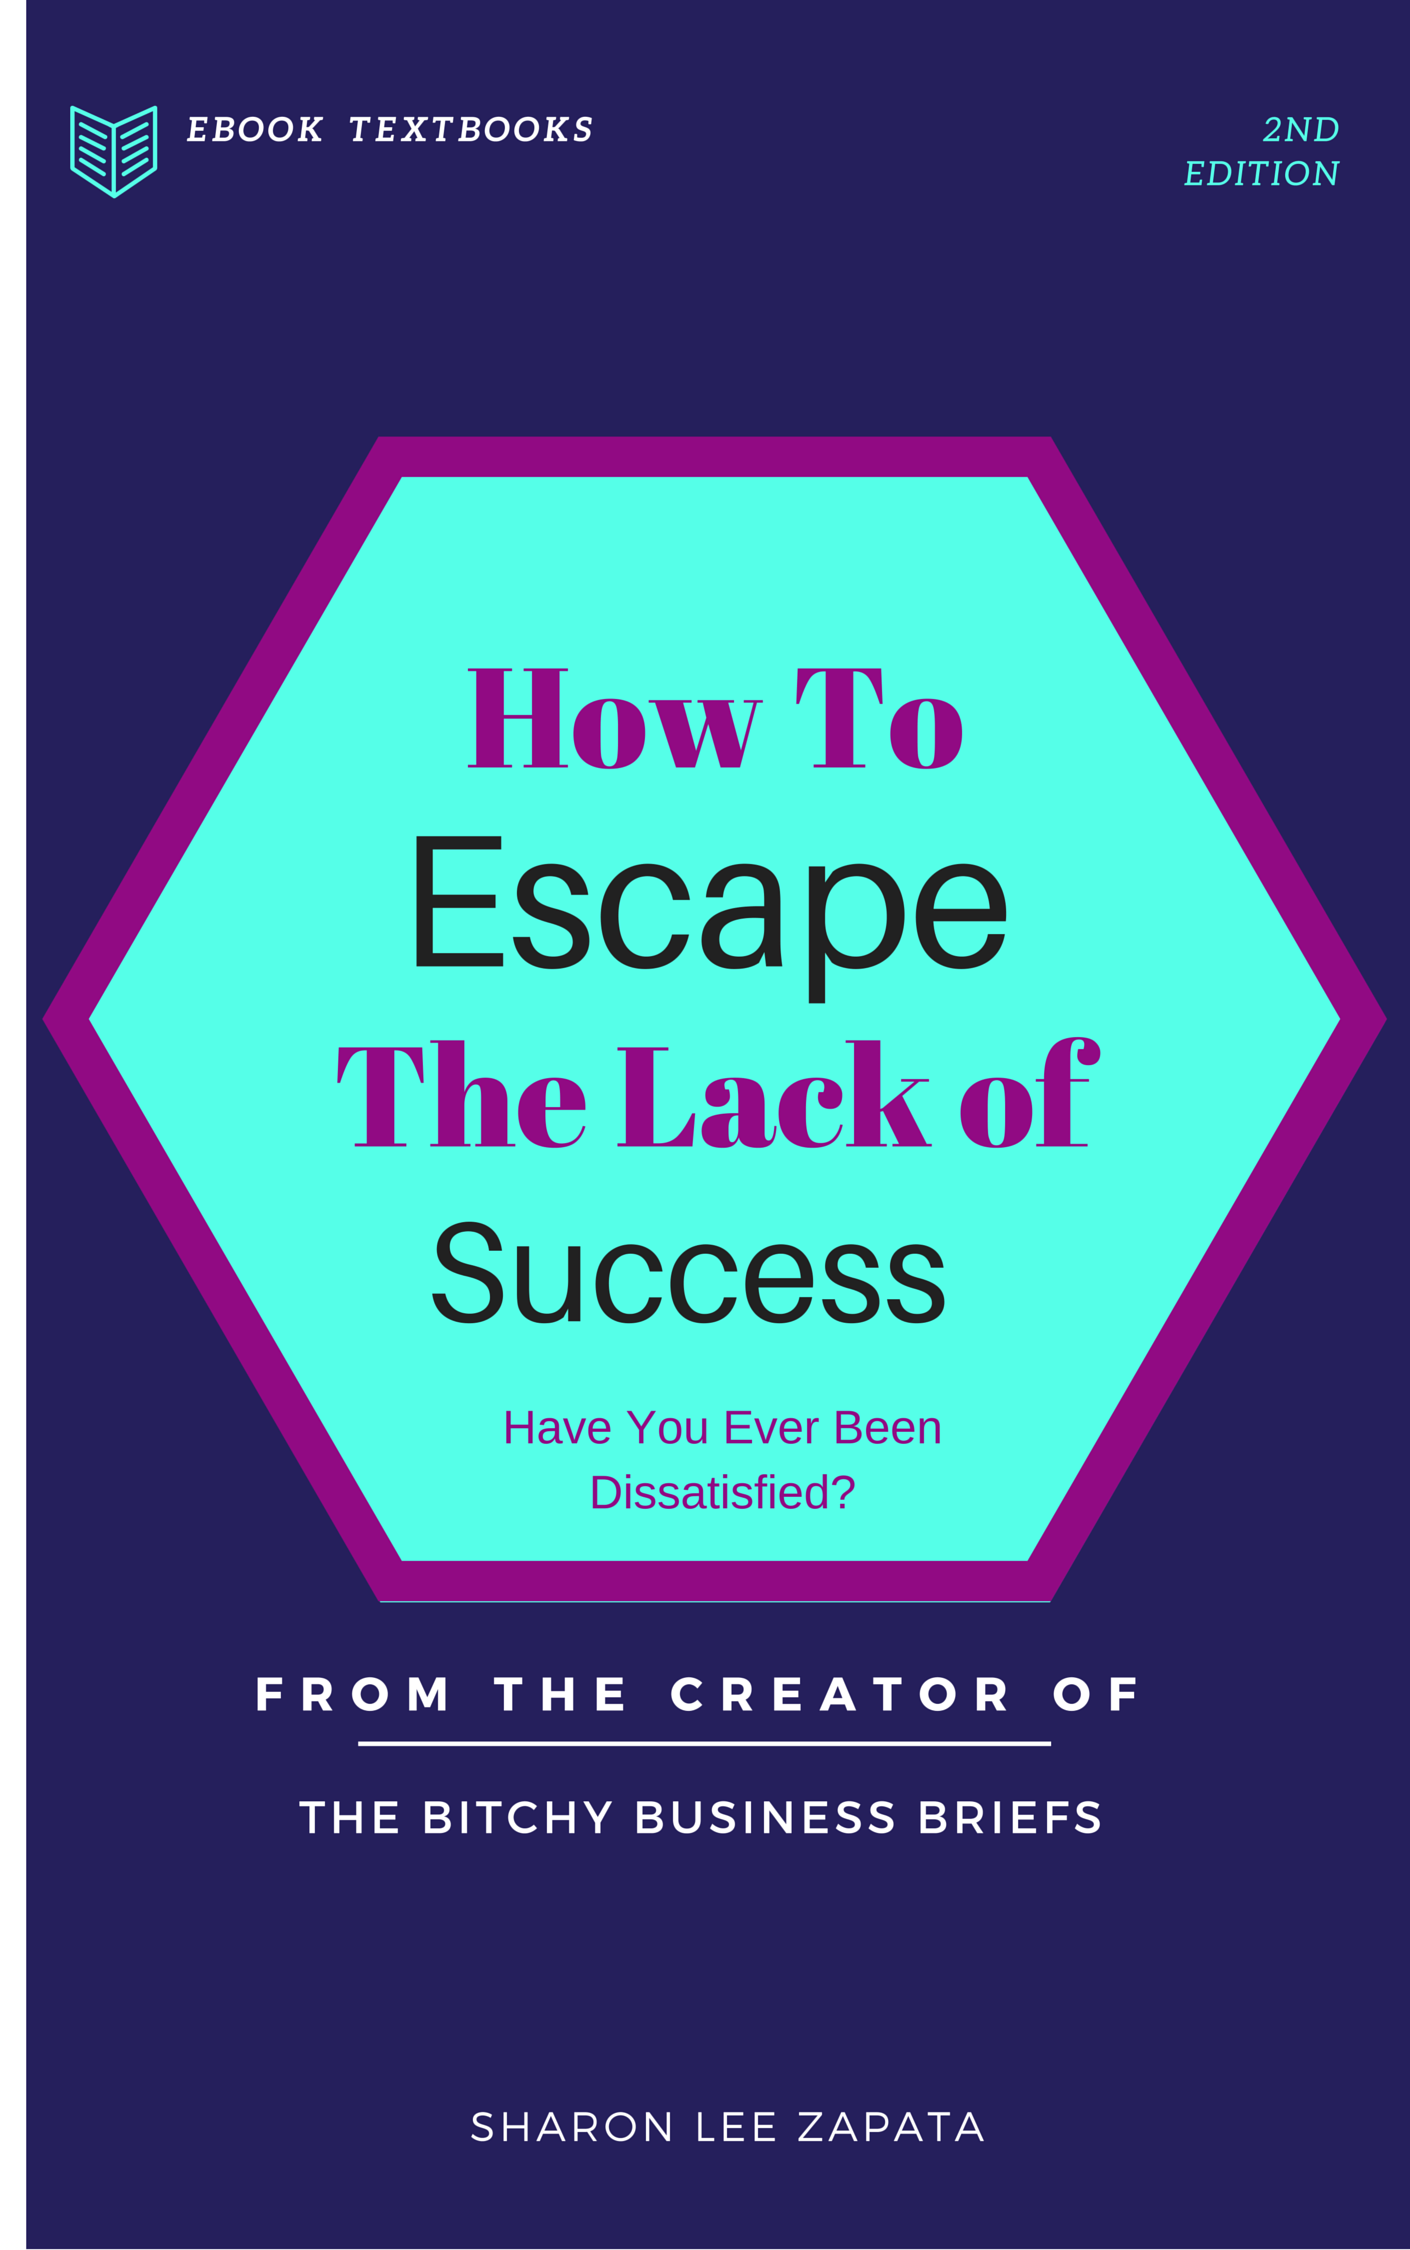 FREE e-Book How To Escape the Lack of Success